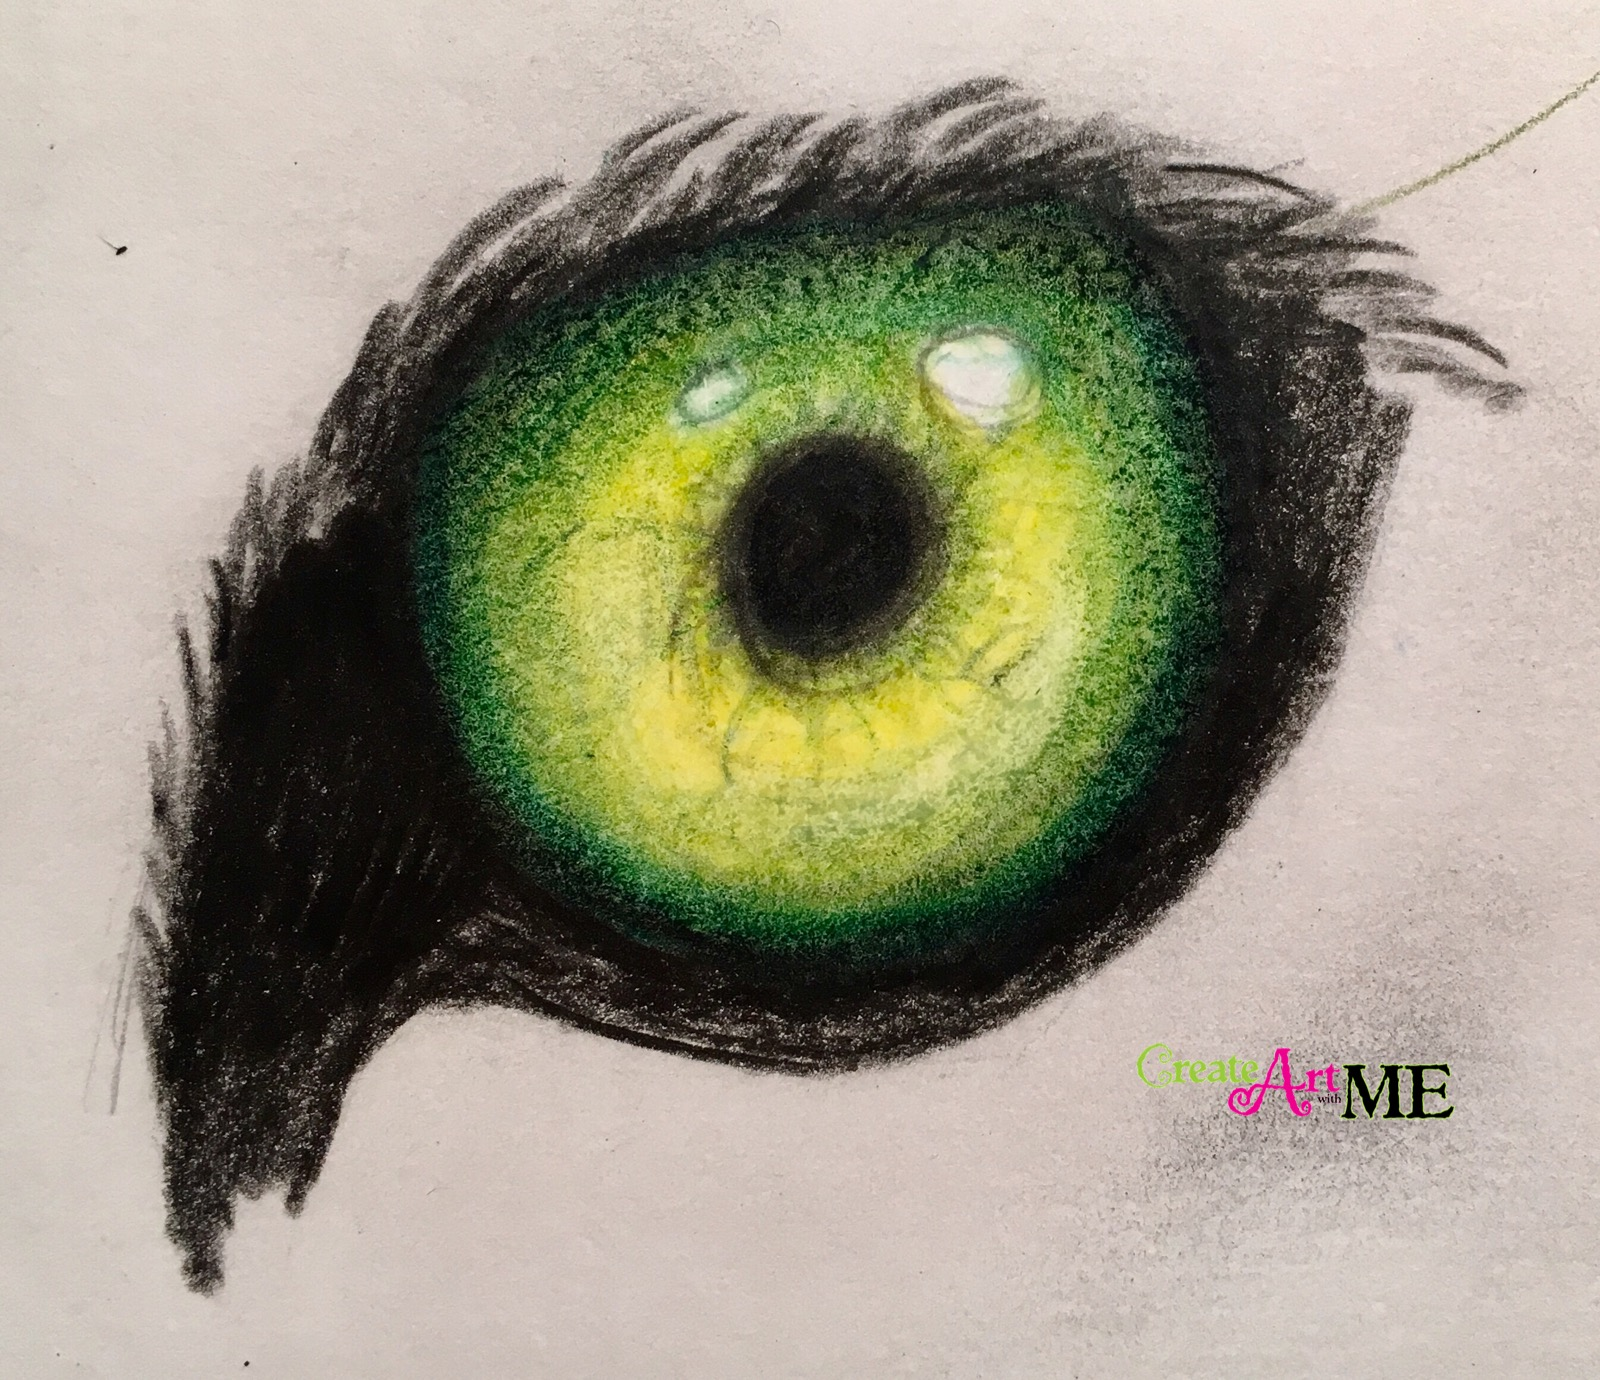 Emphasis Animal Eyes Spot Color Drawing - Create Art with ME